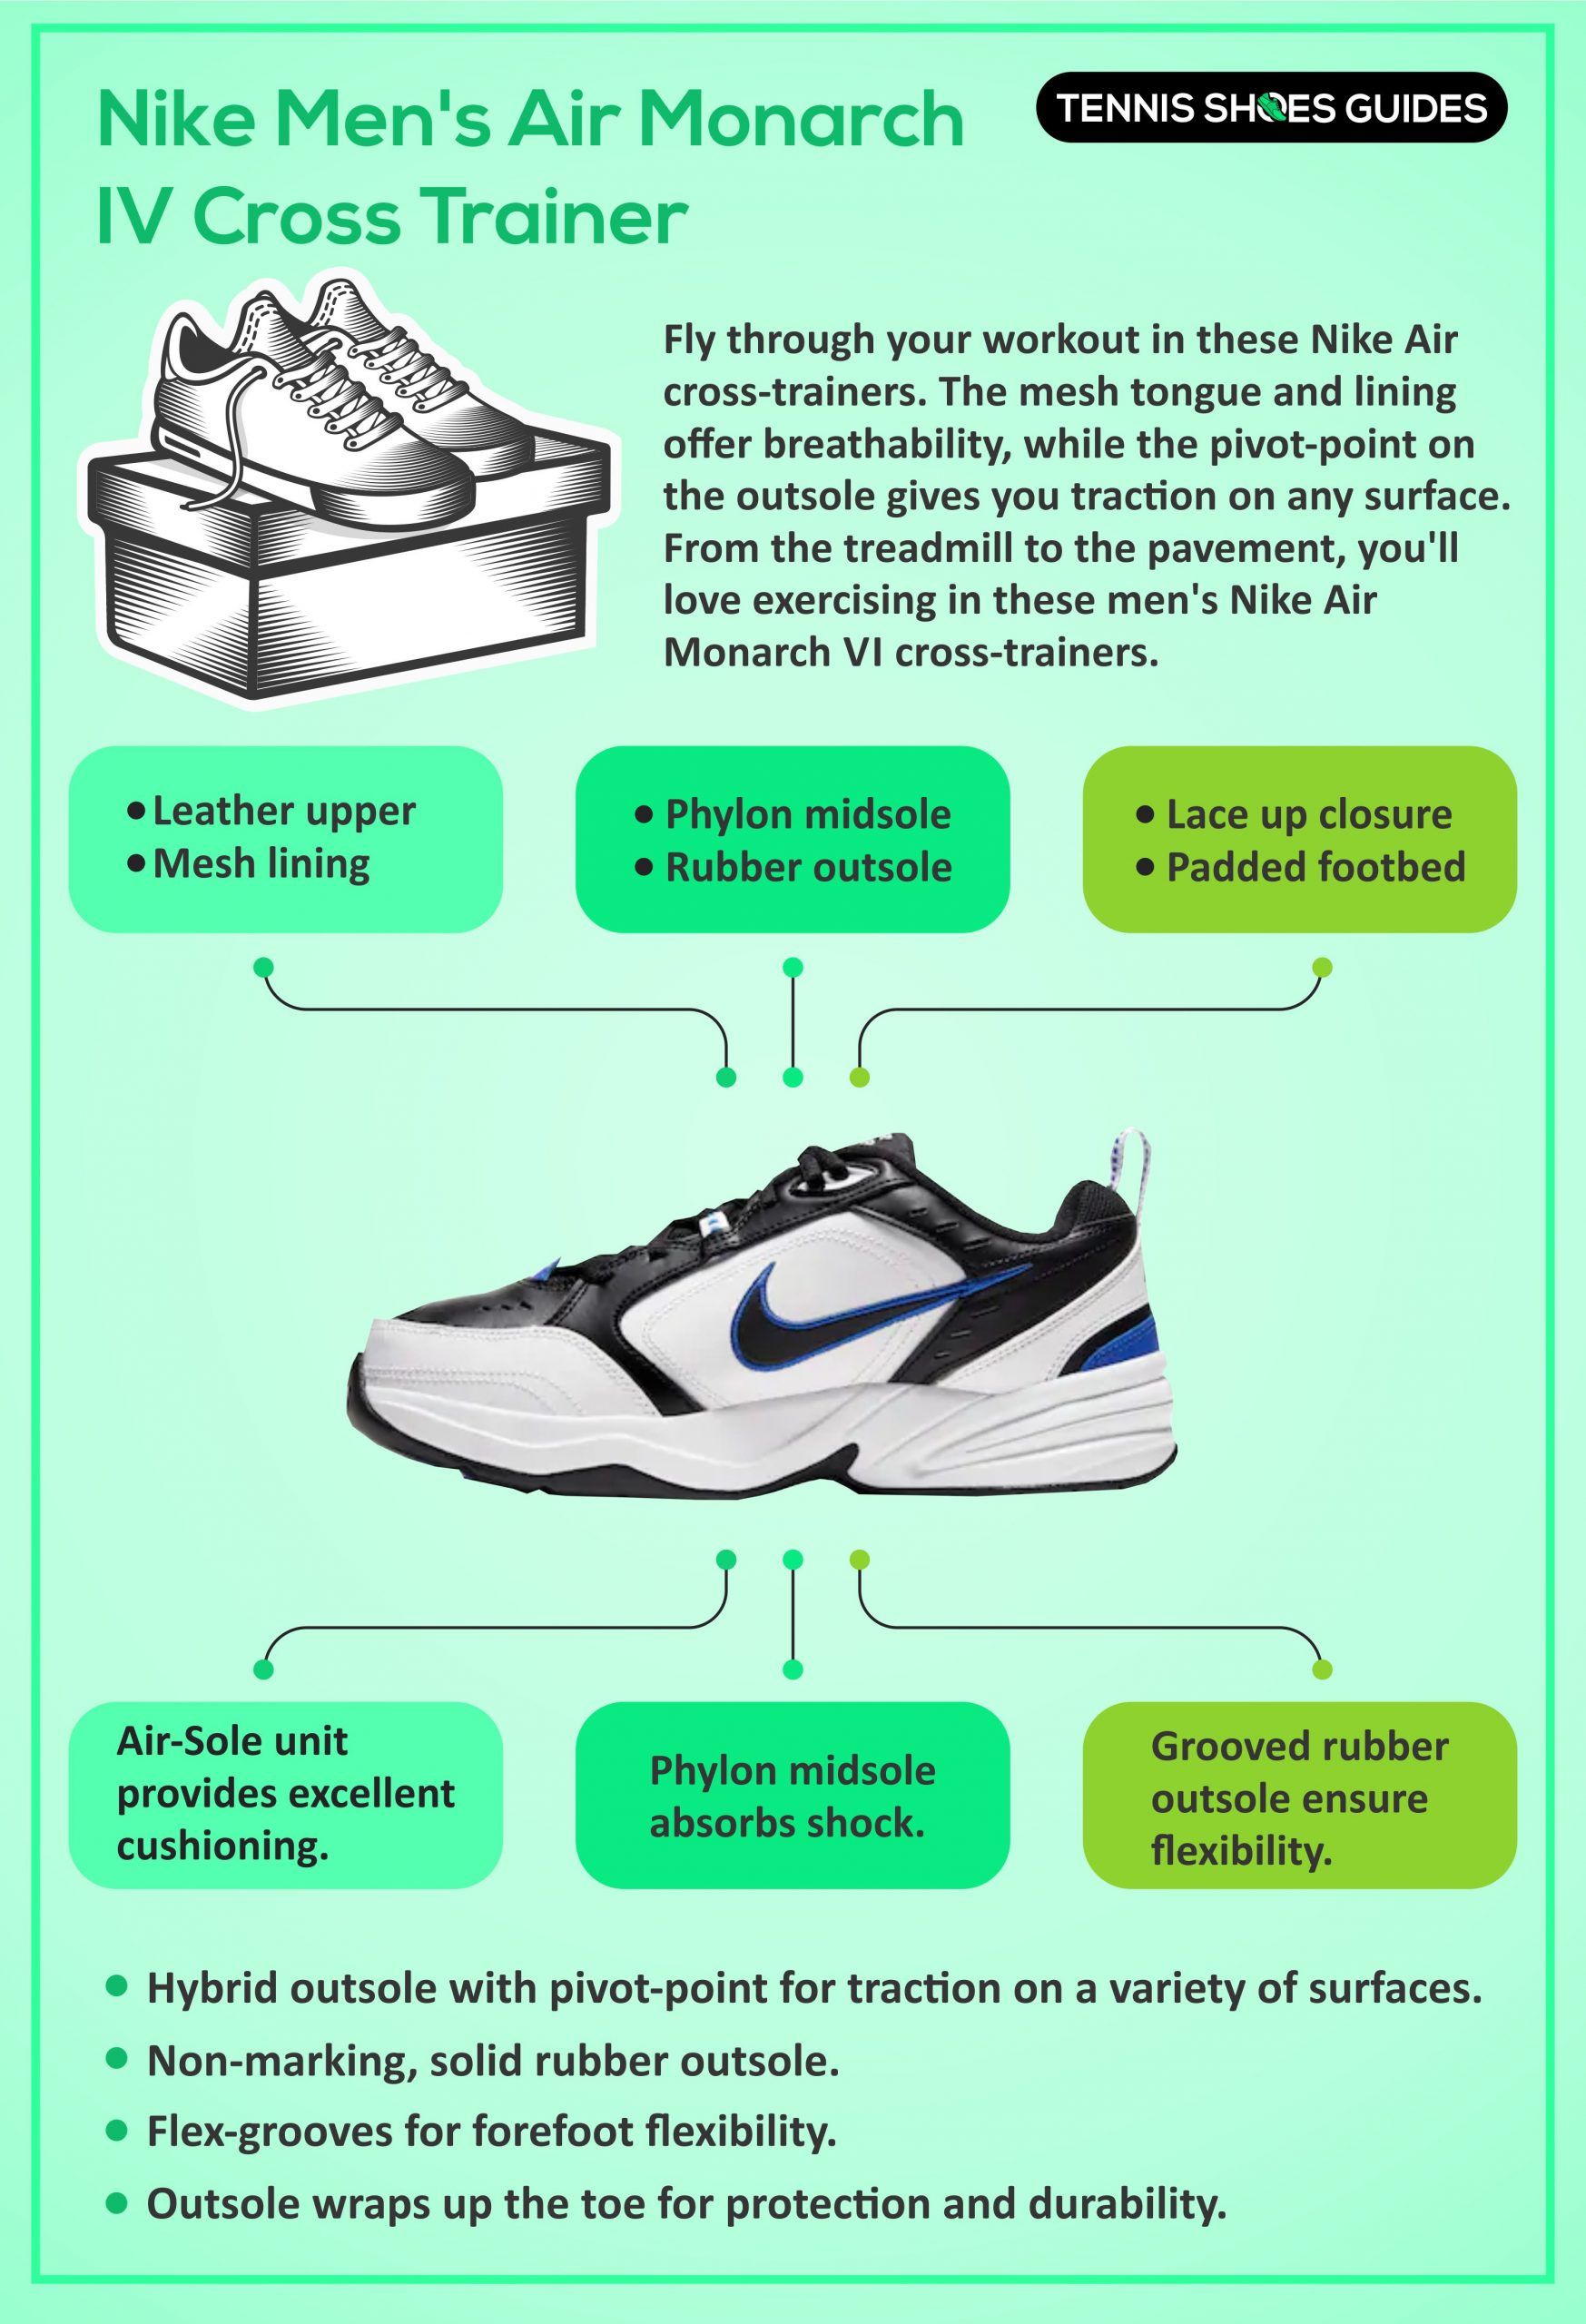 Nike Men's Air Monarch IV Cross Trainer detailed infograph